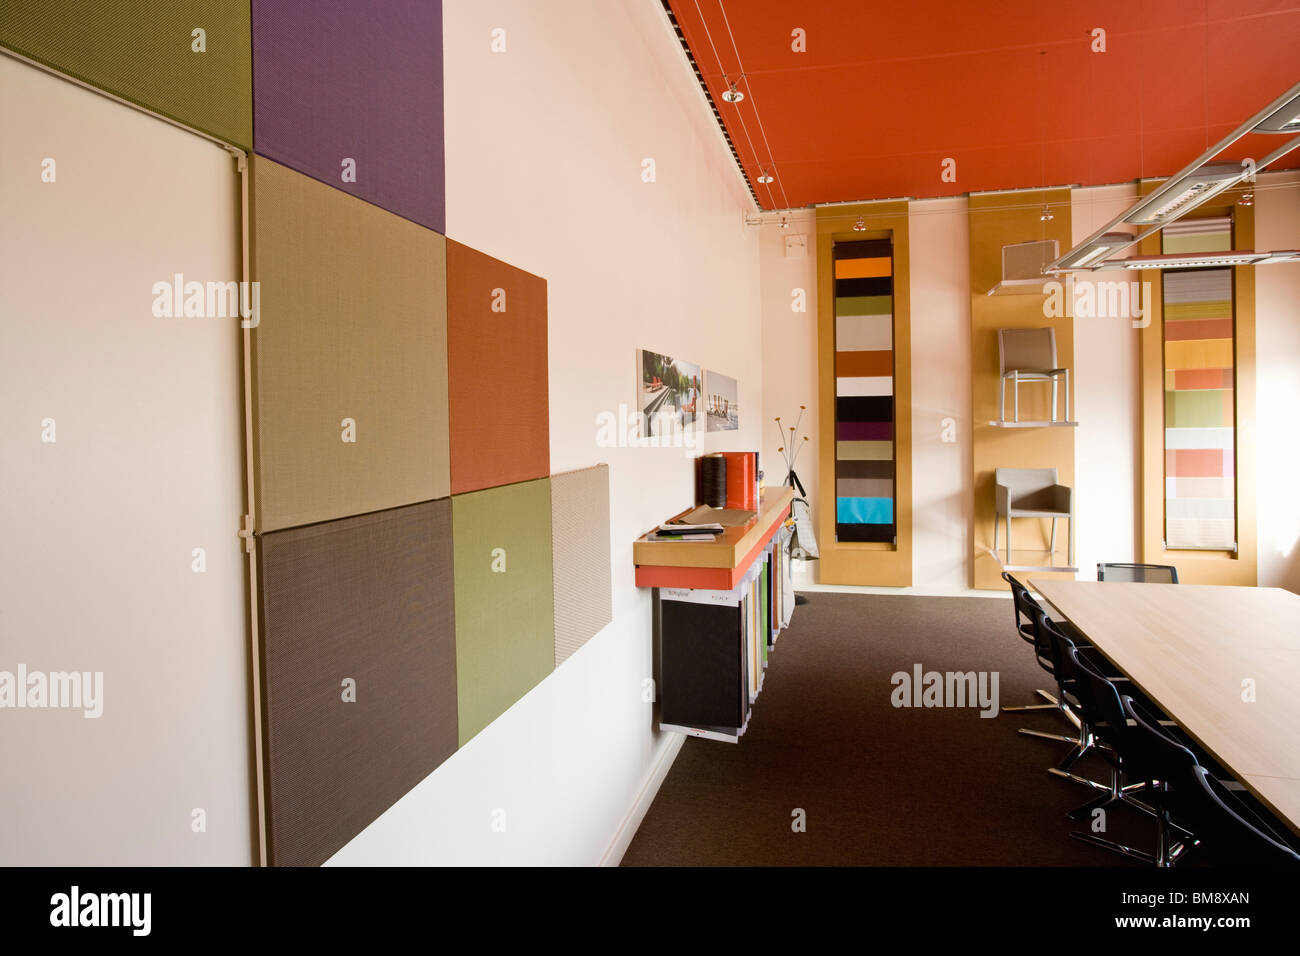 Fabric coating plant, recyclable composite textile weaving mill, show room - Stock Image